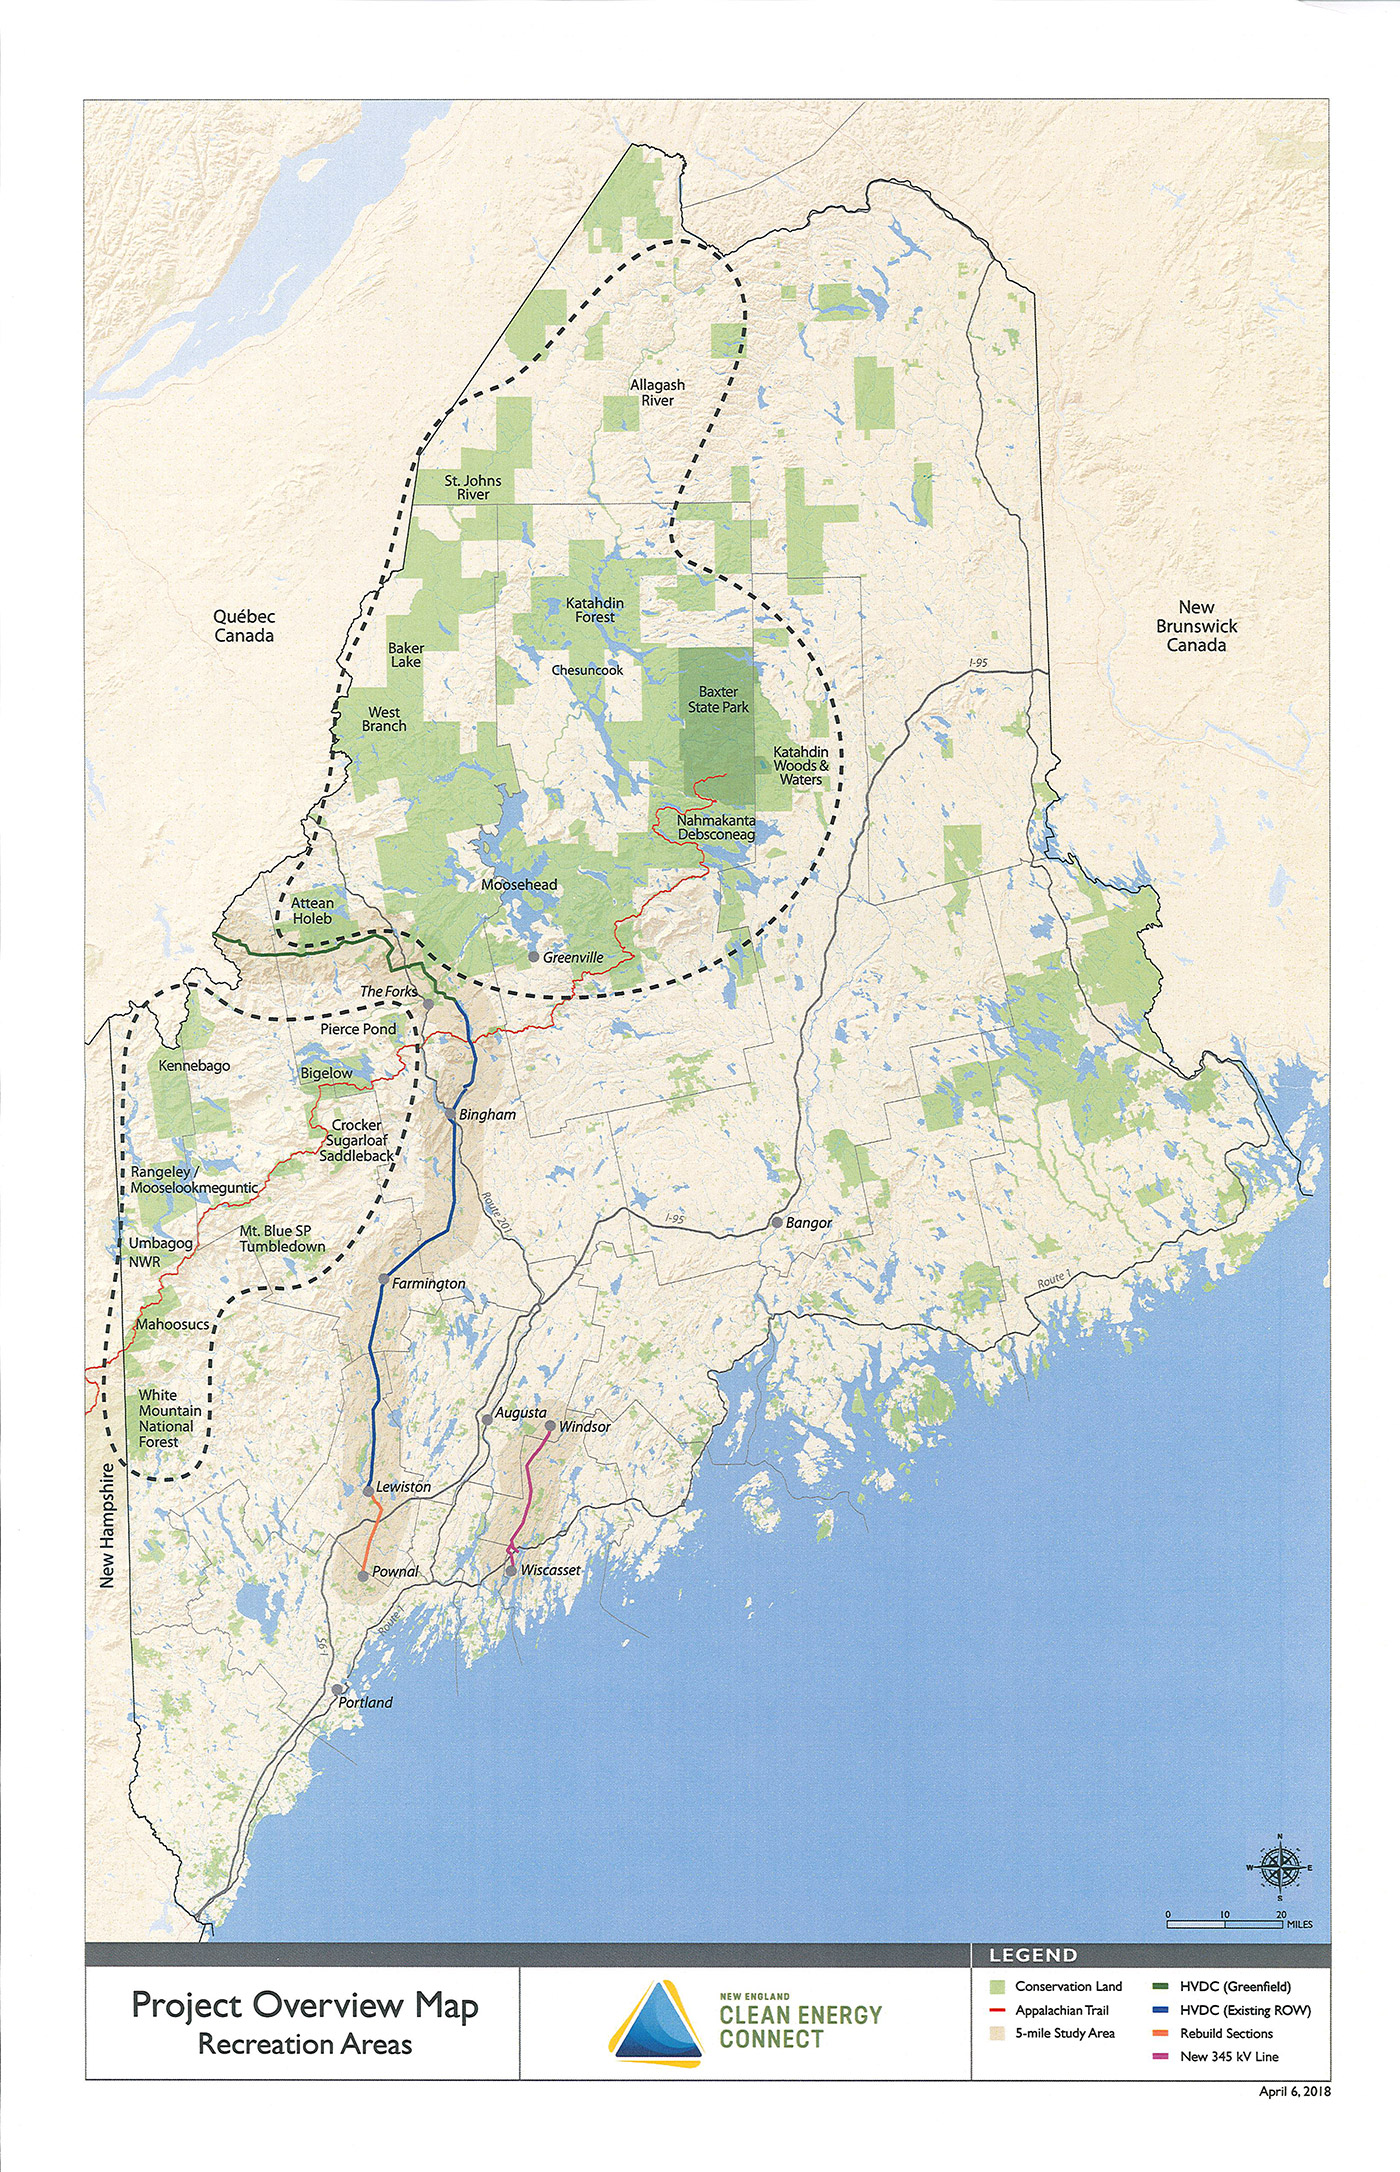 Stephen King Map Of Maine.Cmp Transmission Line Proposal A Bad Deal For Maine